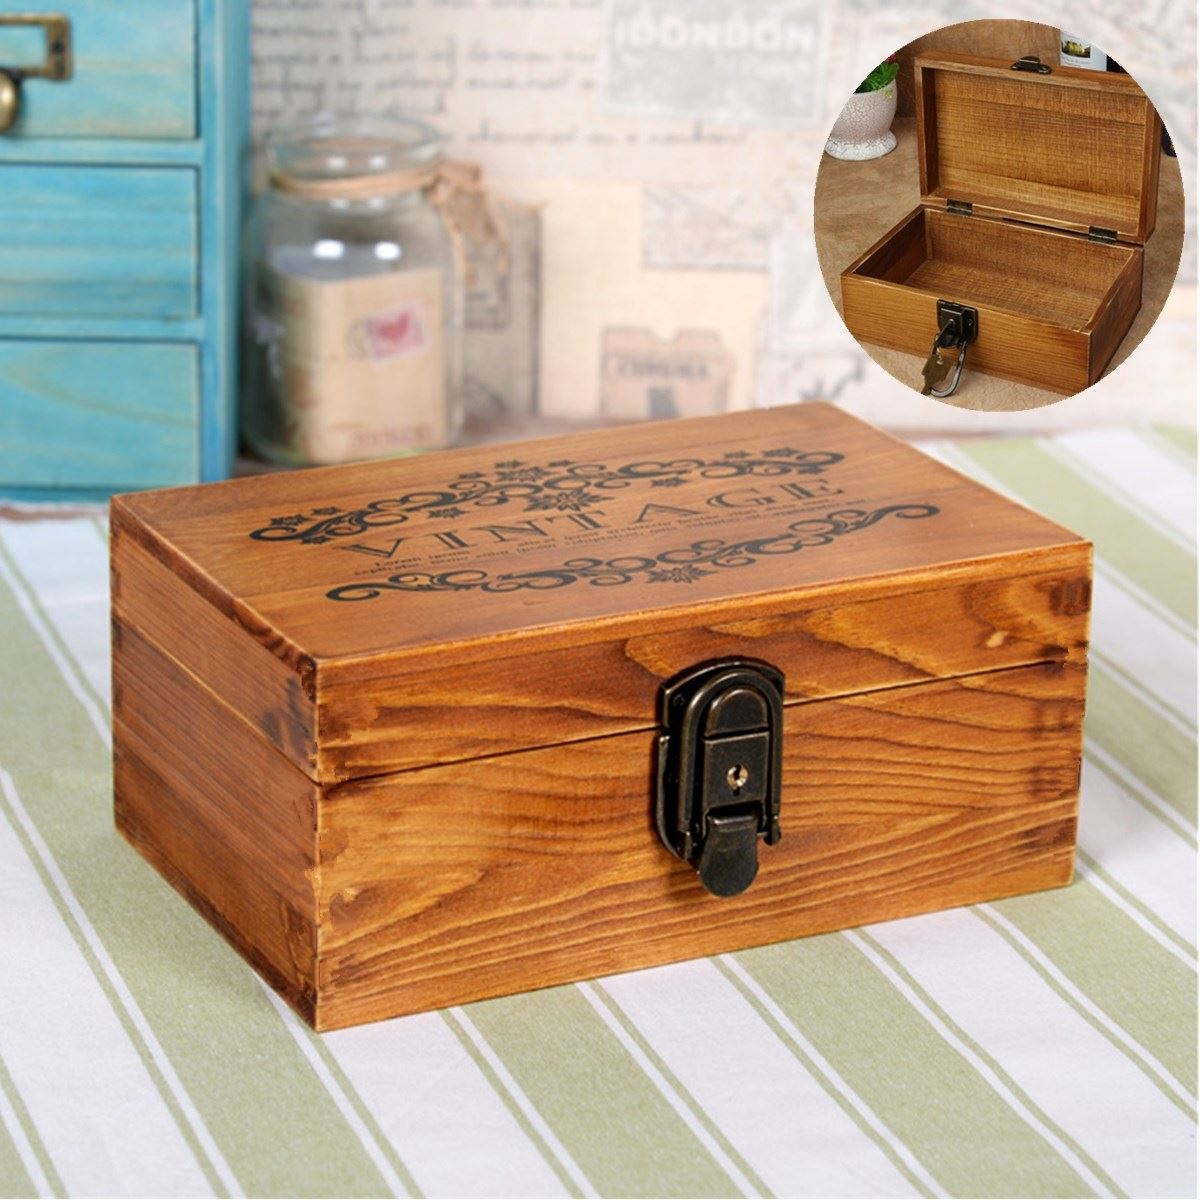 Retro Antique Vintage Wood Key Locker Jewelry Wooden Storage Box Organizer With 2 Keys Decorative Gift Boxes Case 221410cm In Packaging Display